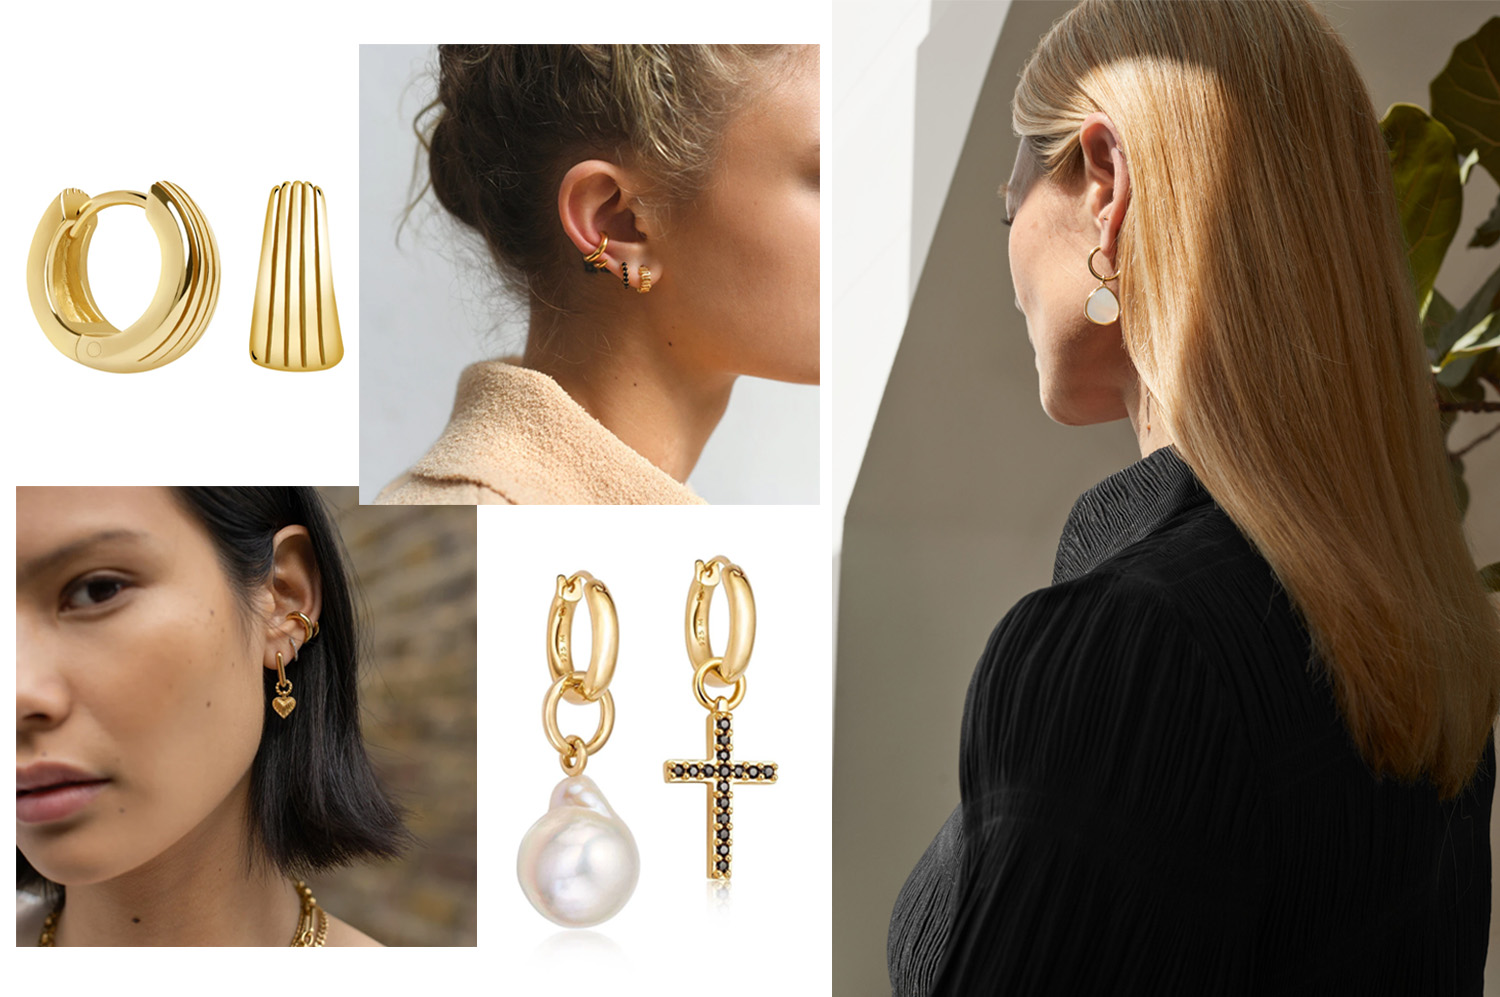 16 Pairs of Gold Earrings That Will Compliment Every Look